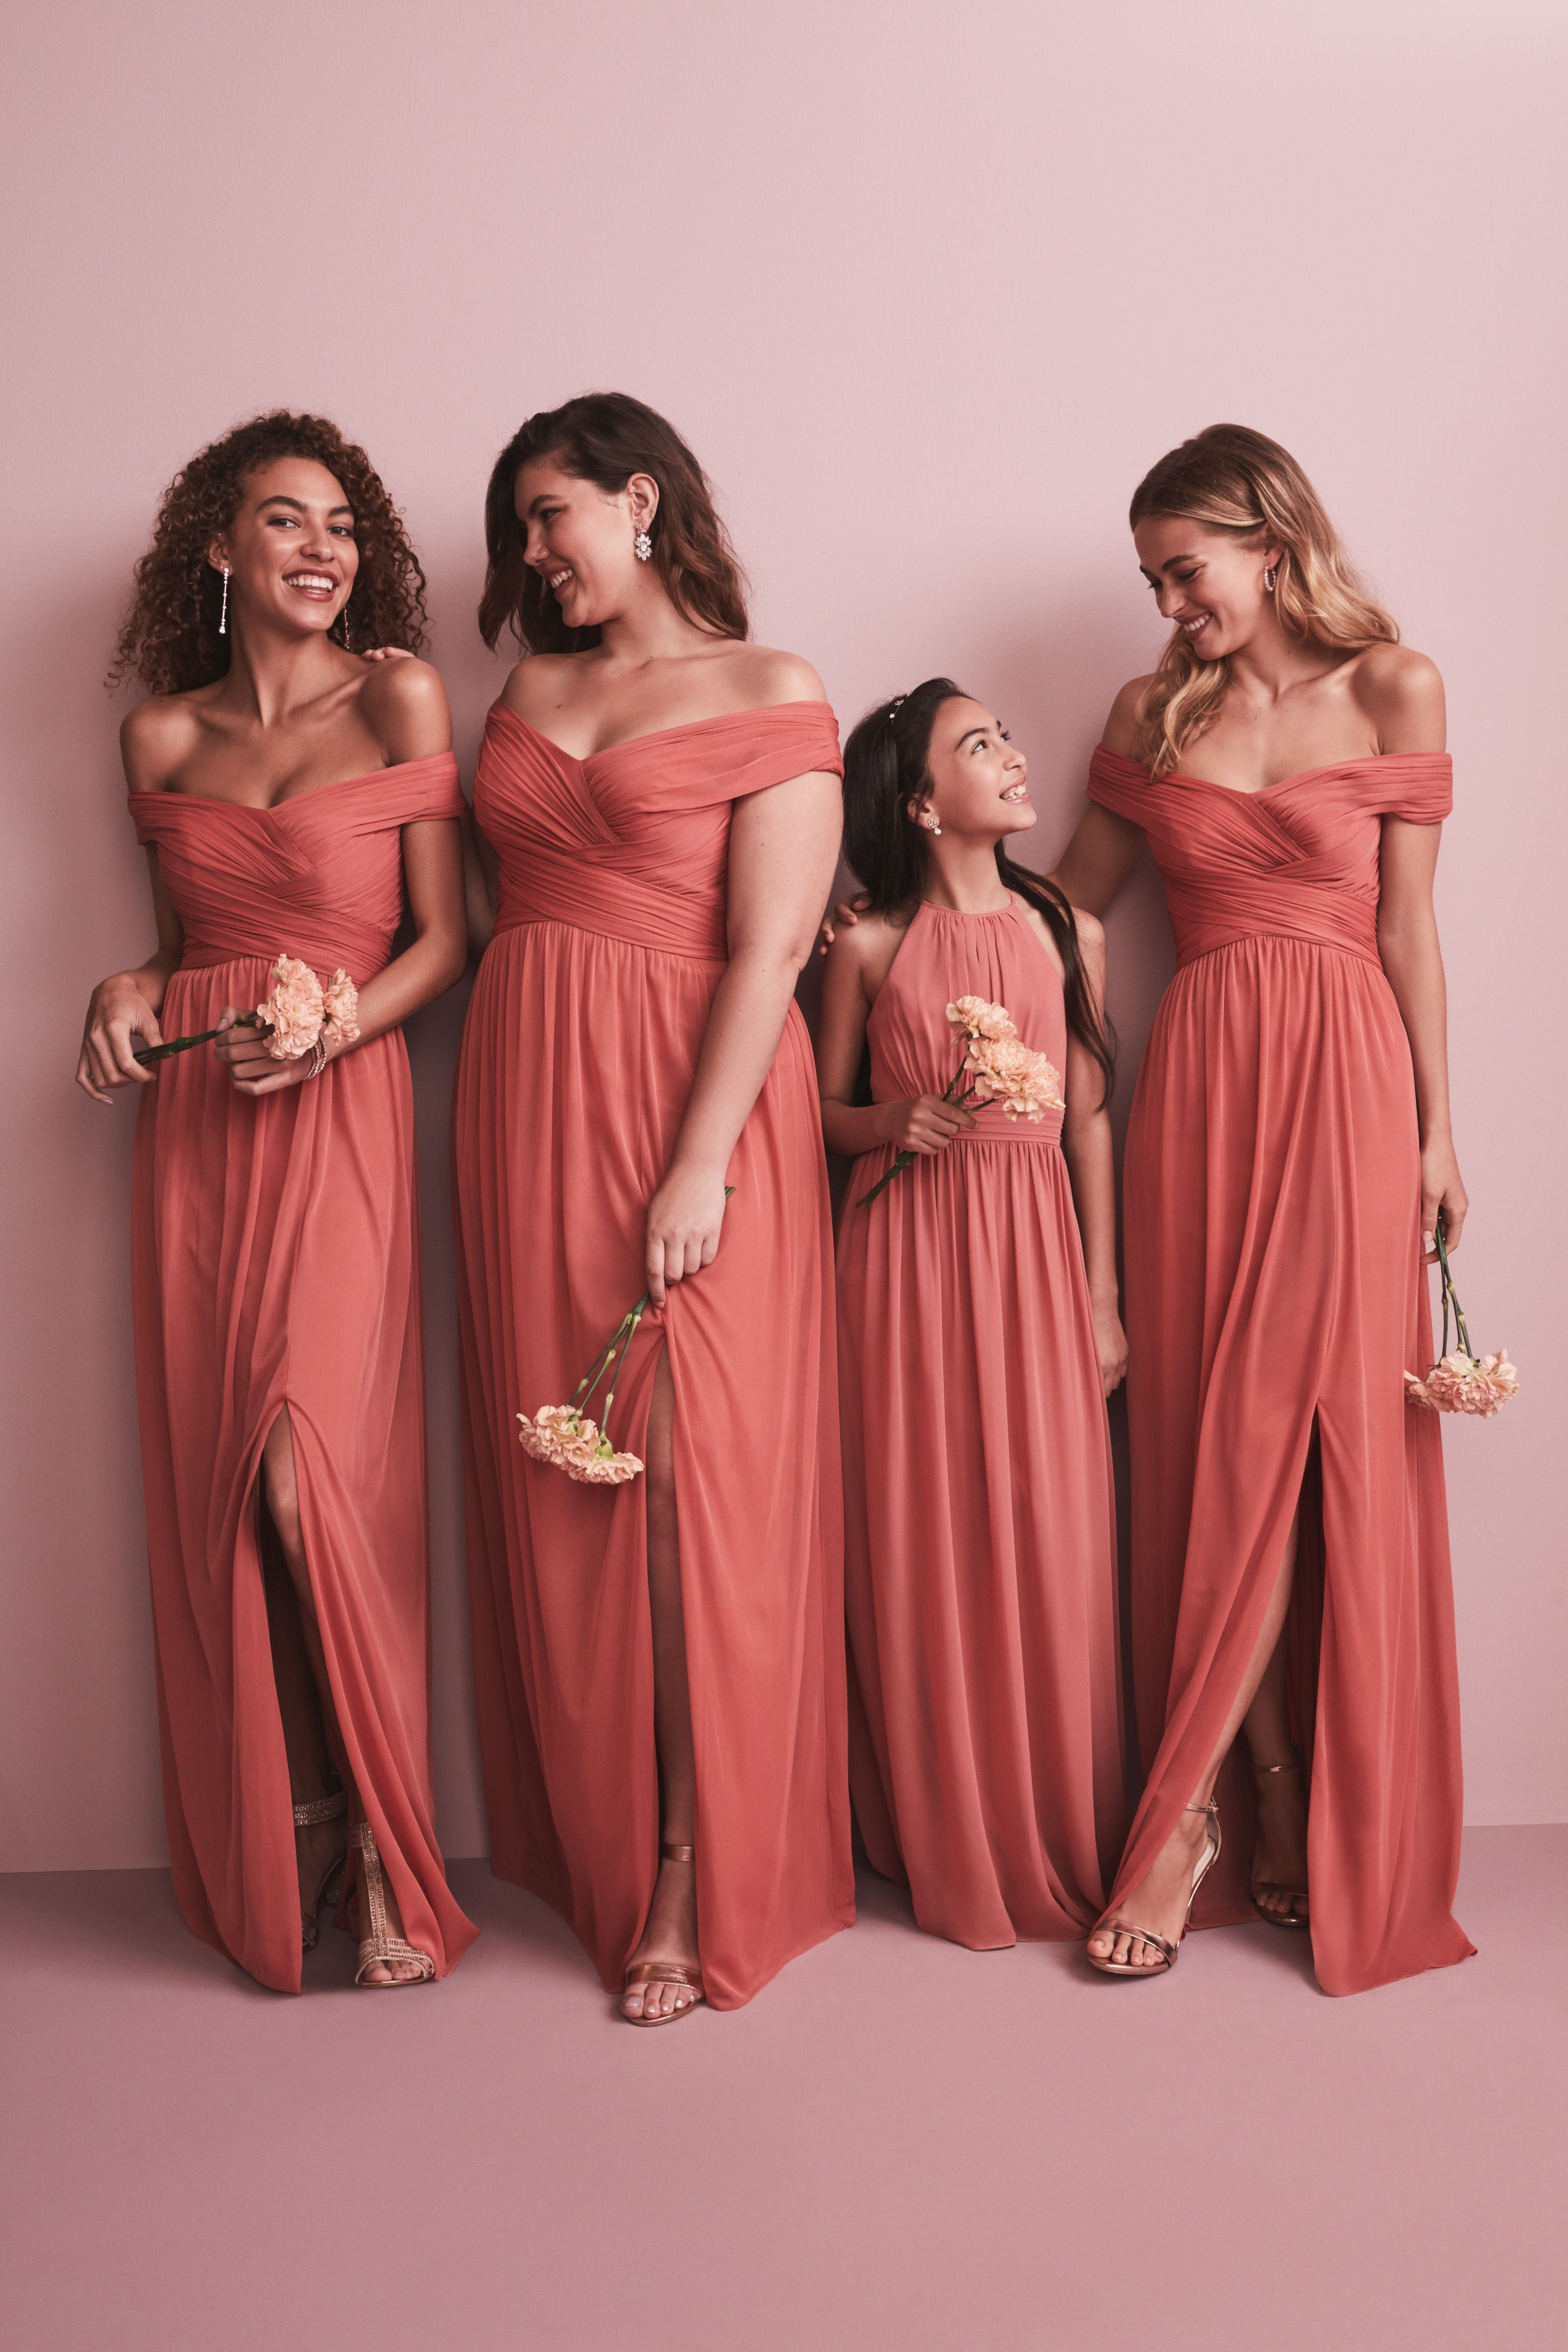 New Coral Bridesmaid Dresses From David S Bridal Coral Bridesmaid Dresses Davids Bridal Bridesmaid Dresses Davids Bridal Bridesmaid Dresses Long